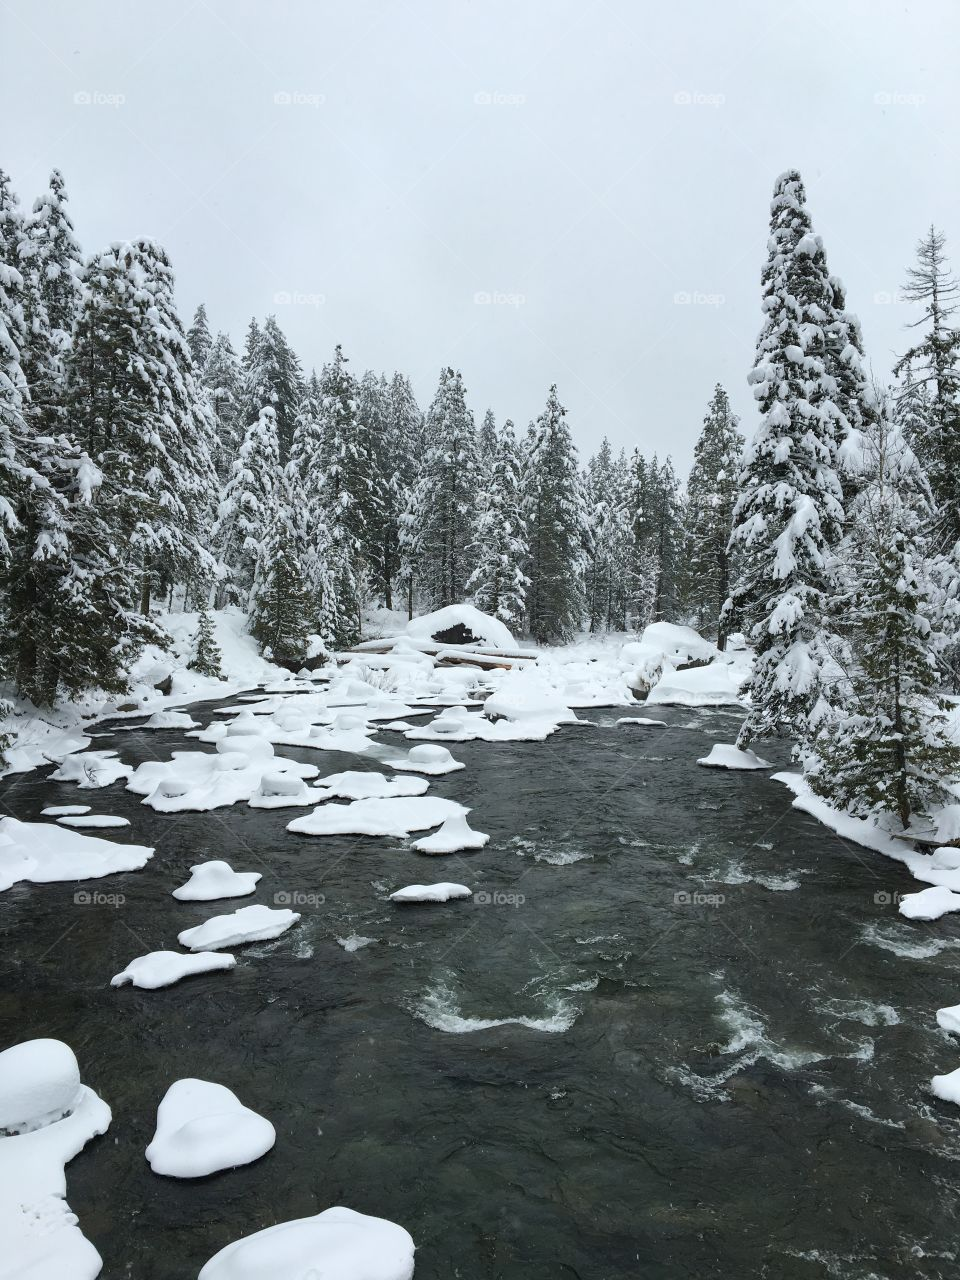 Mountain creek in winter with snow covered trees